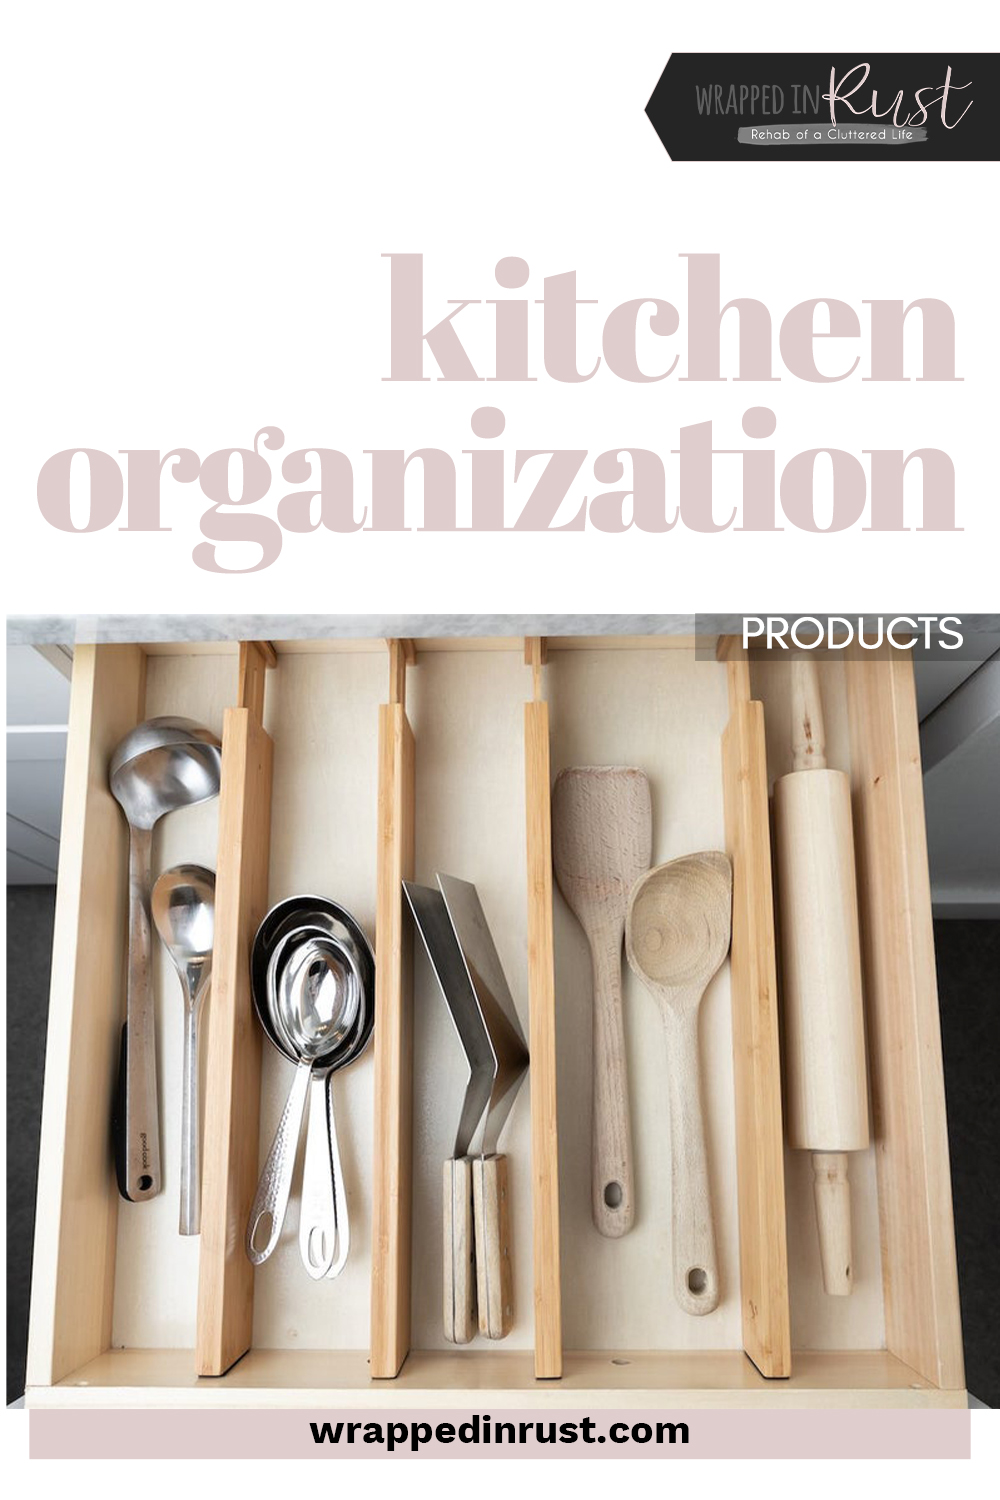 Kitchen organization products to help you organize your kitchen and improve efficiency. Organize your drawers, counters, and other things with these products found on Etsy! #wrappedinrustblog #kitchenorganizationproducts